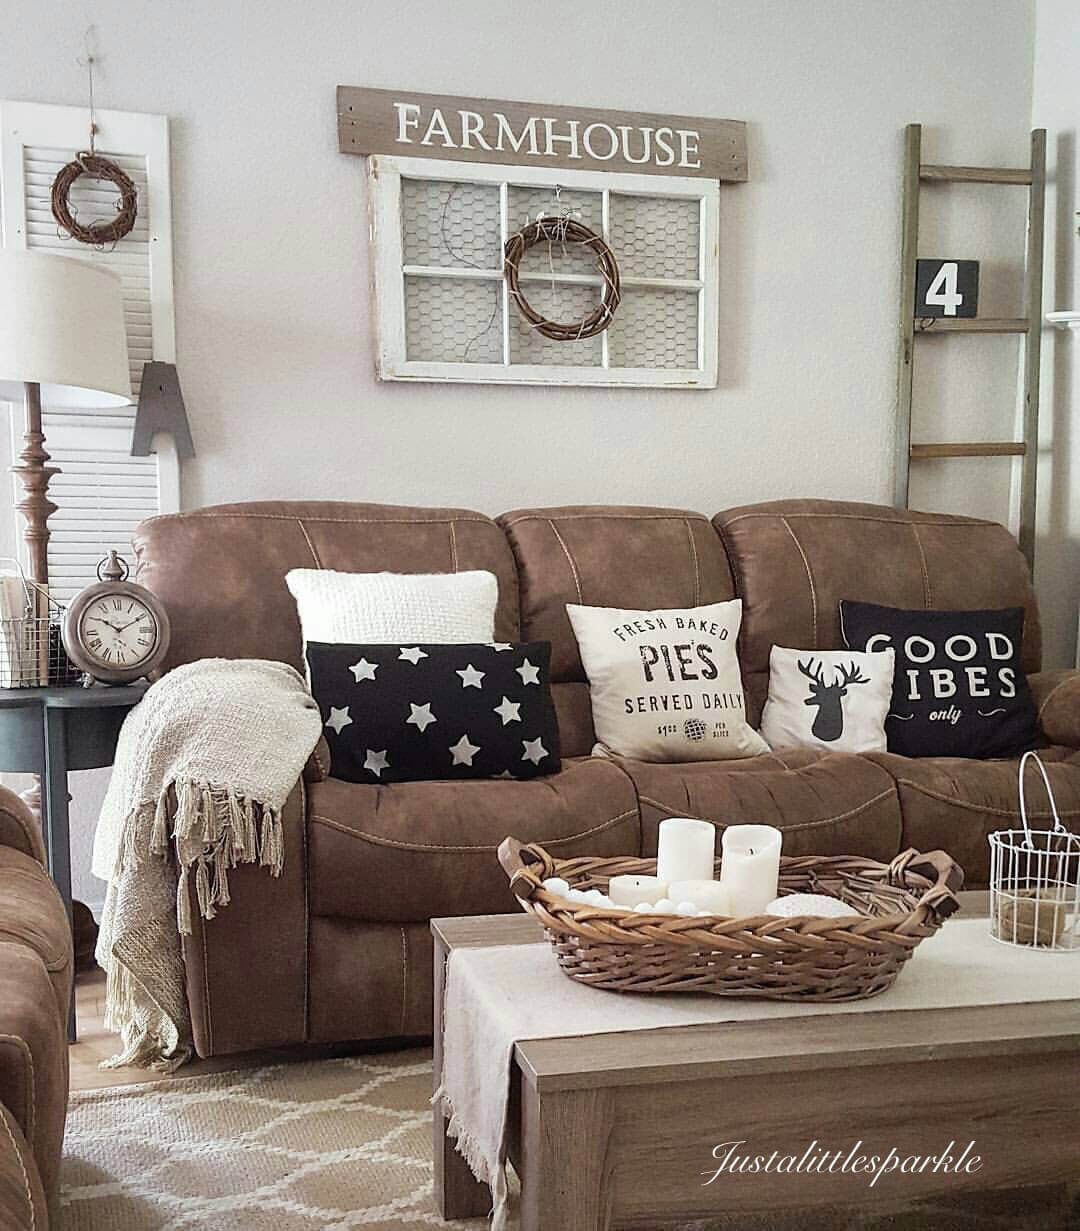 Awesome Microfiber Couch Farmhouse Living Room Decor Ideas